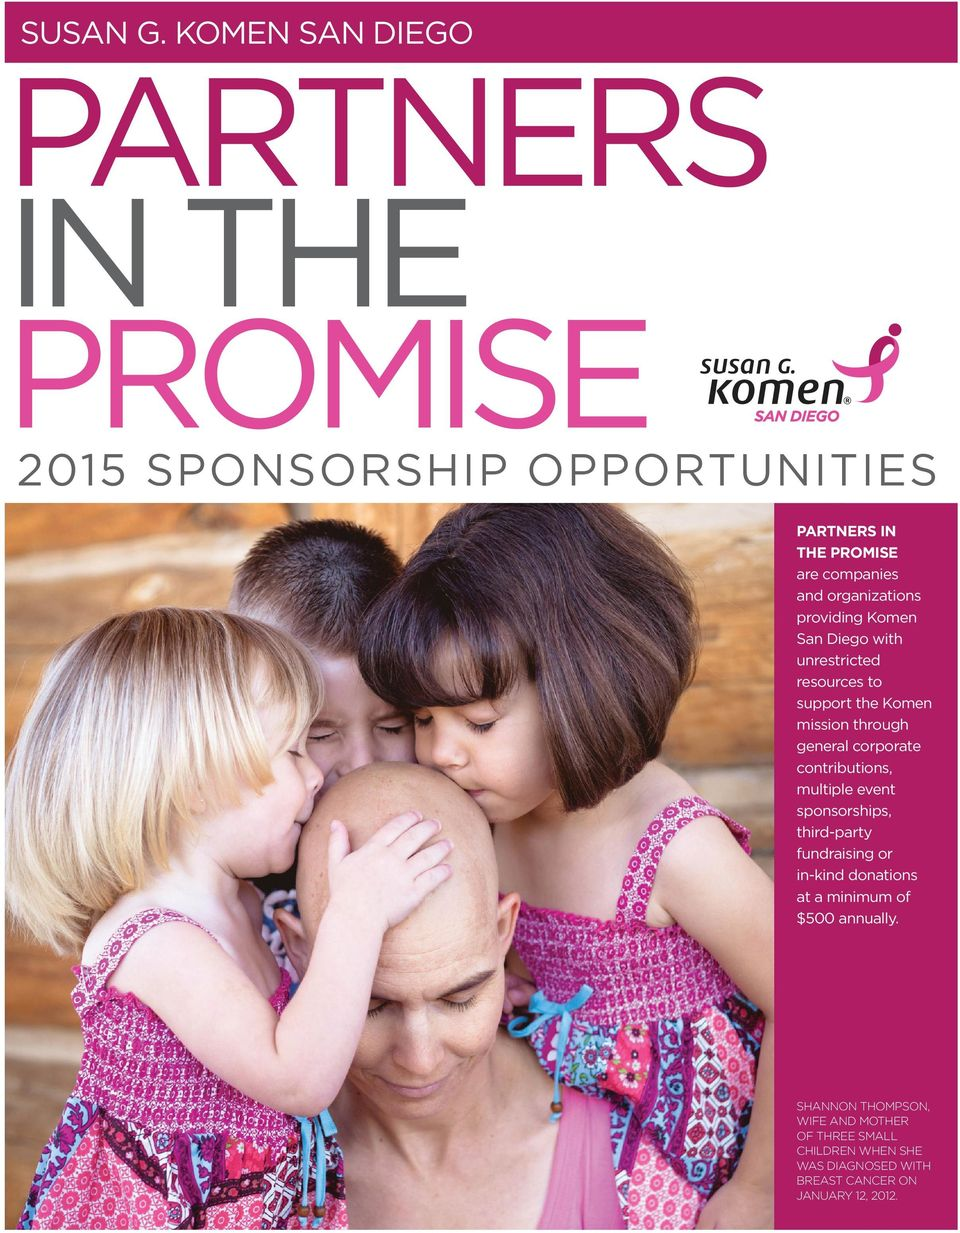 organizations providing Komen San Diego with unrestricted resources to support the Komen mission through general